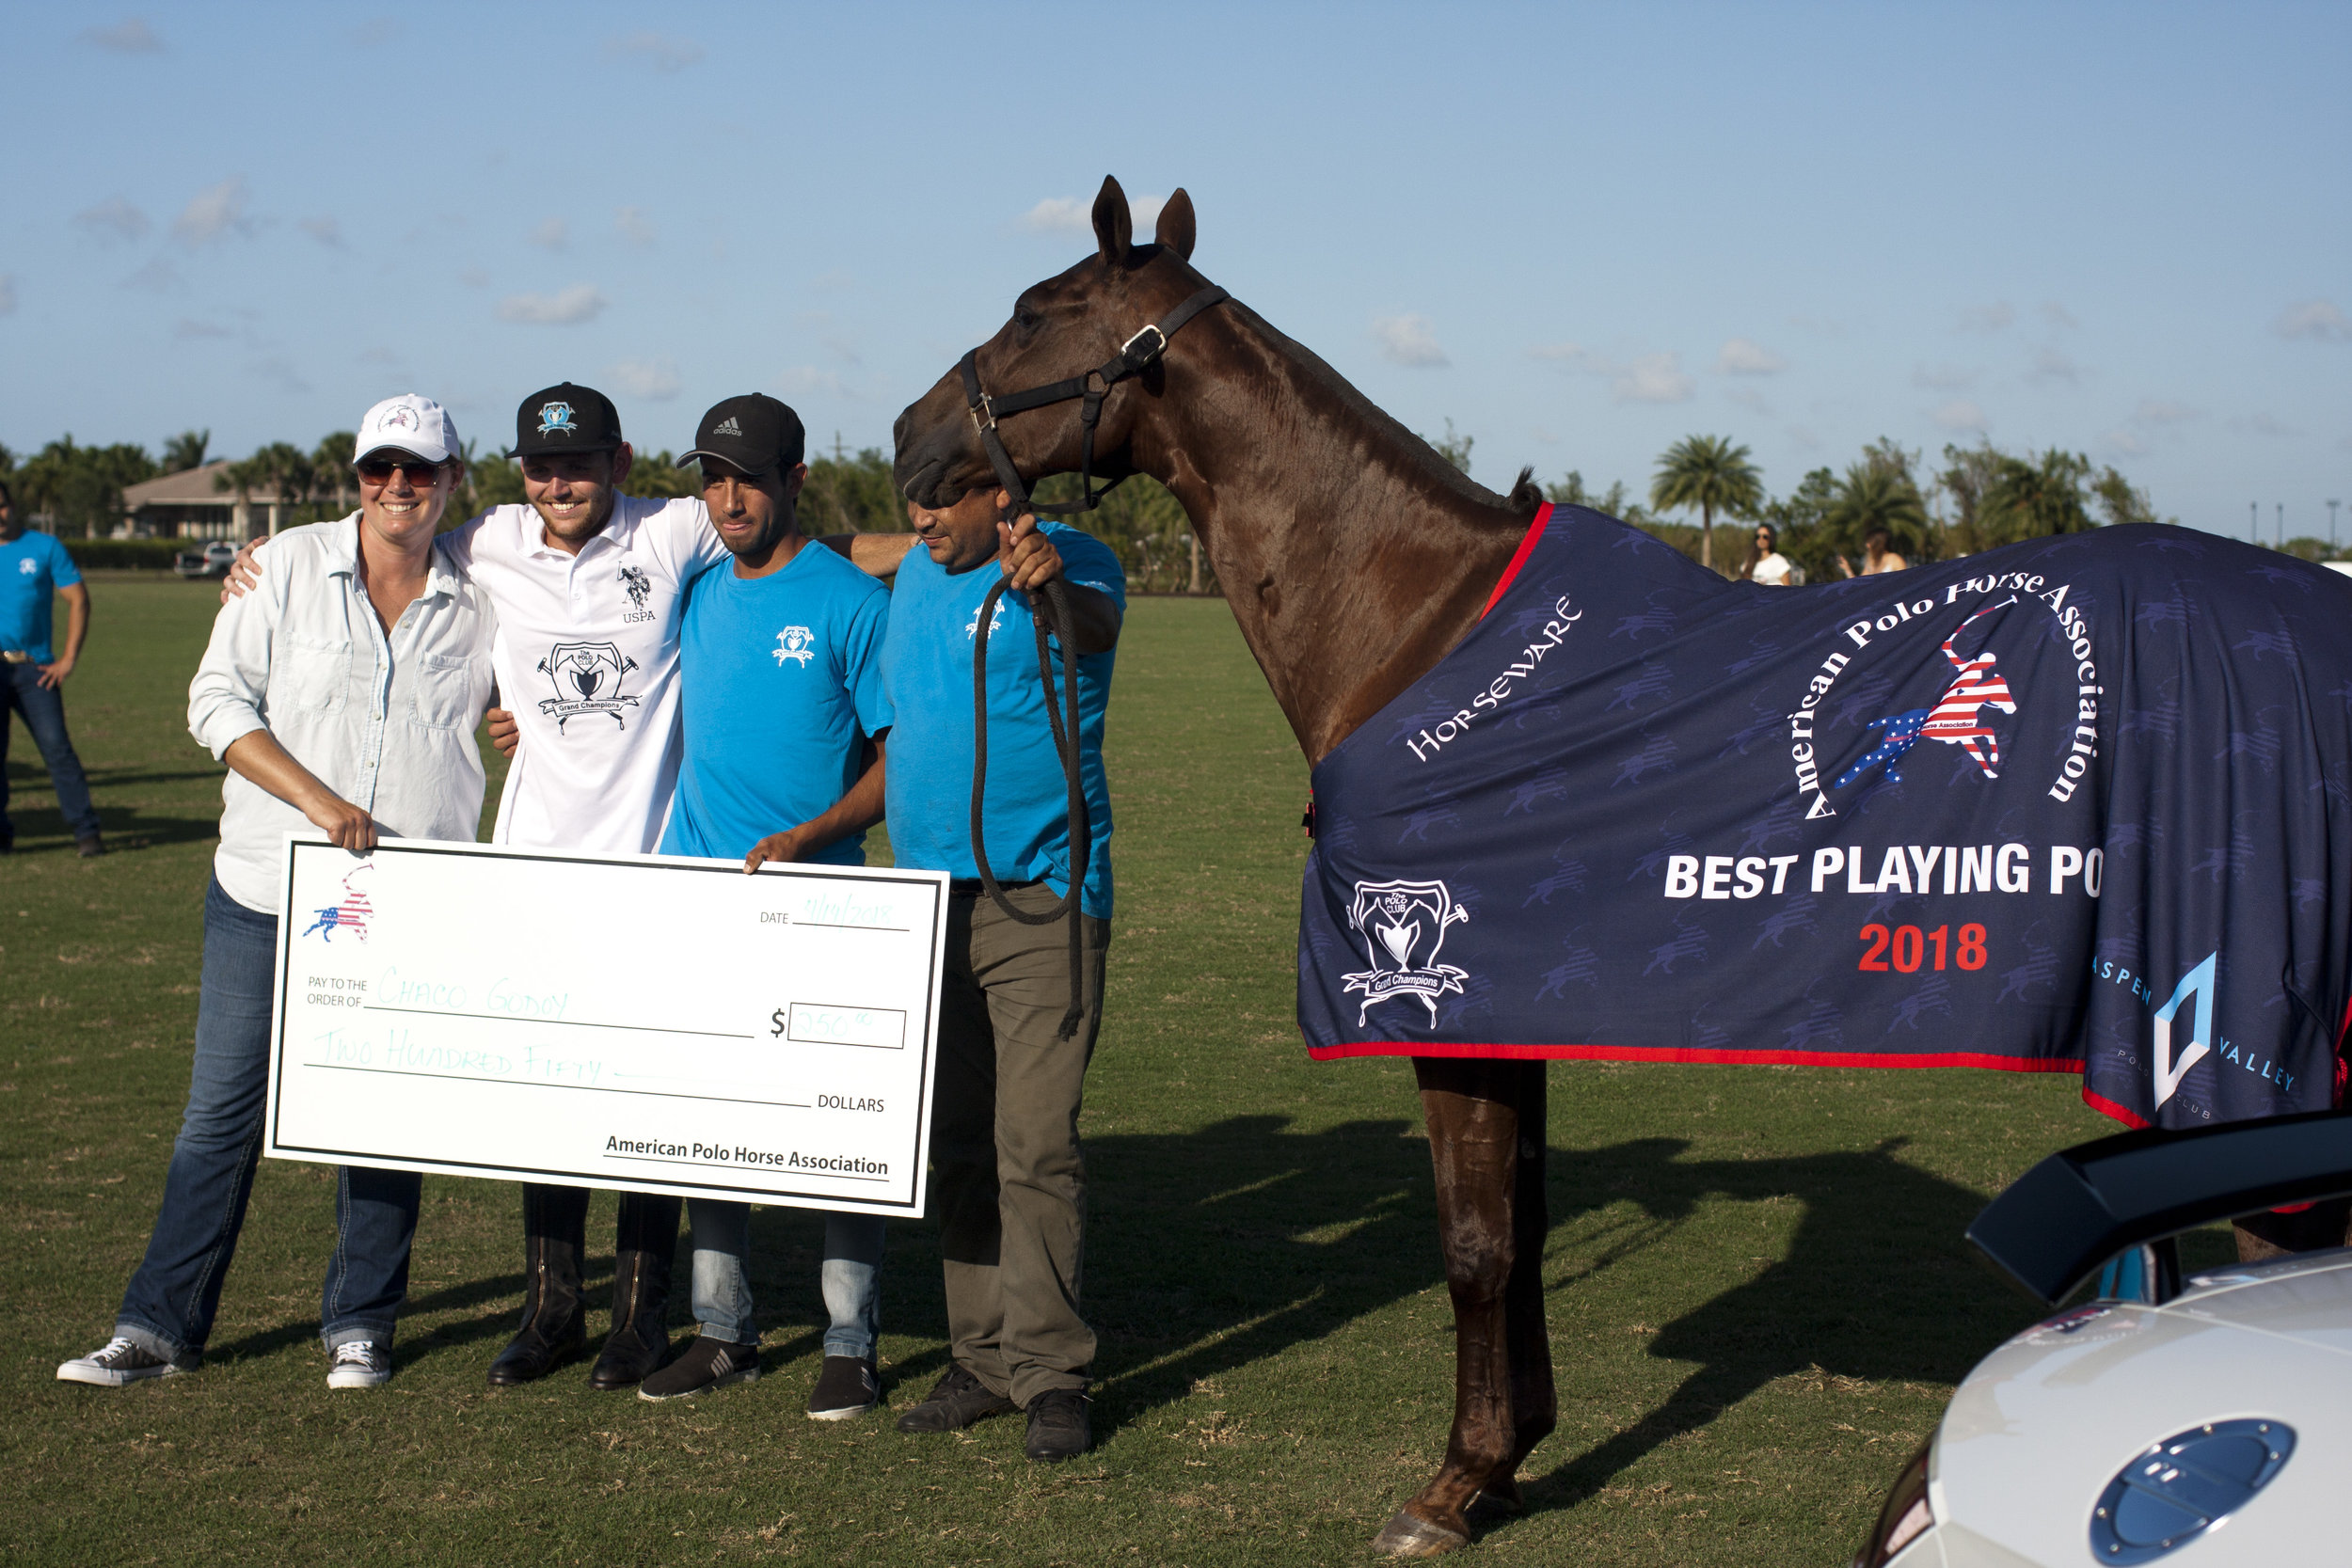 Chaja, the American Polo Horse Association best re.JPG